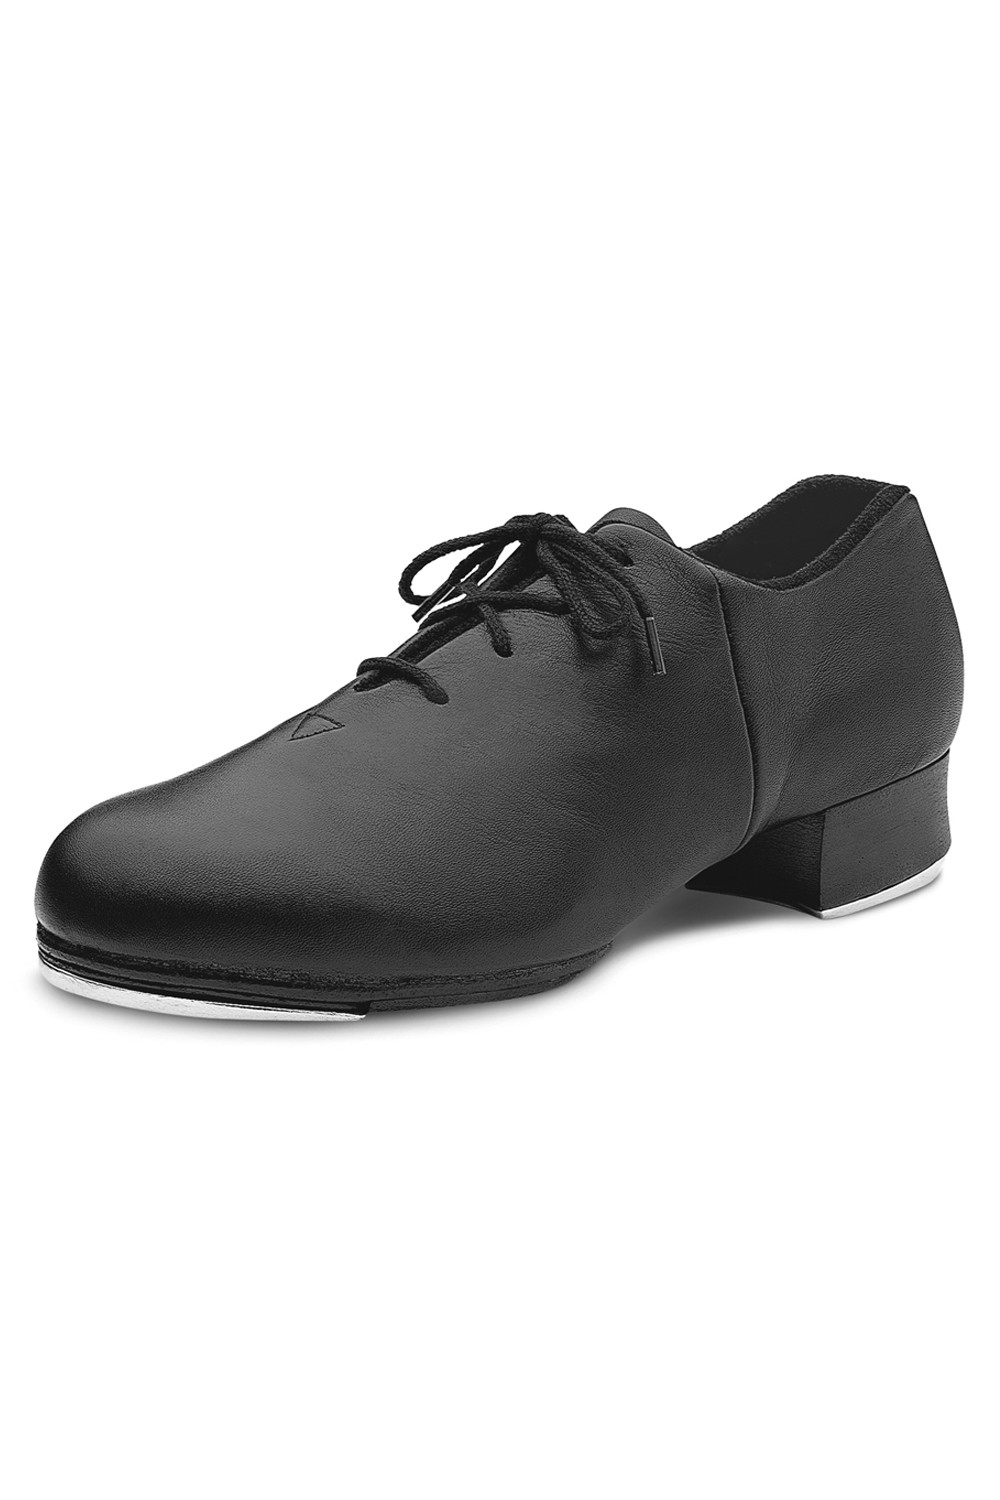 Tap-flex - Men's Men's Tap Shoes